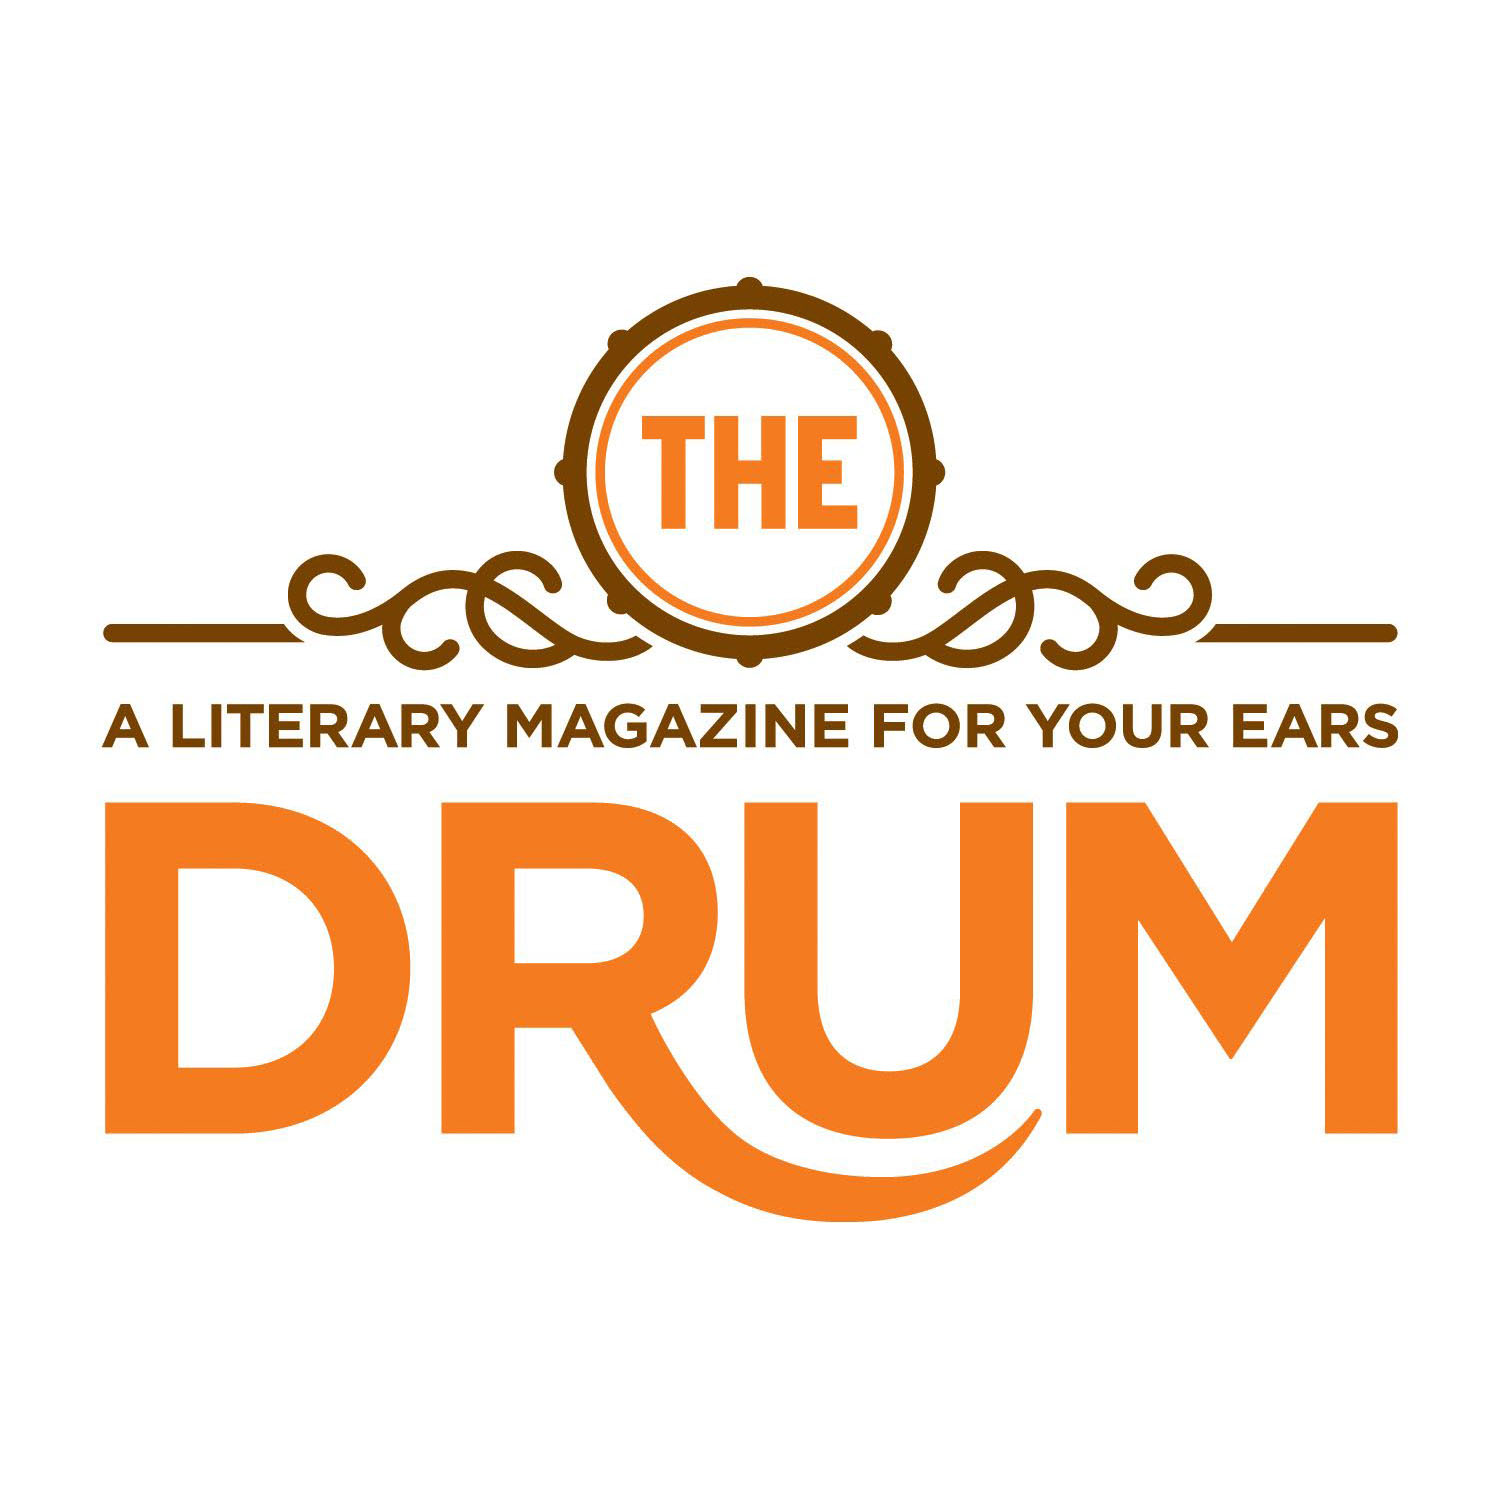 The Drum: A Literary Magazine For Your Ears